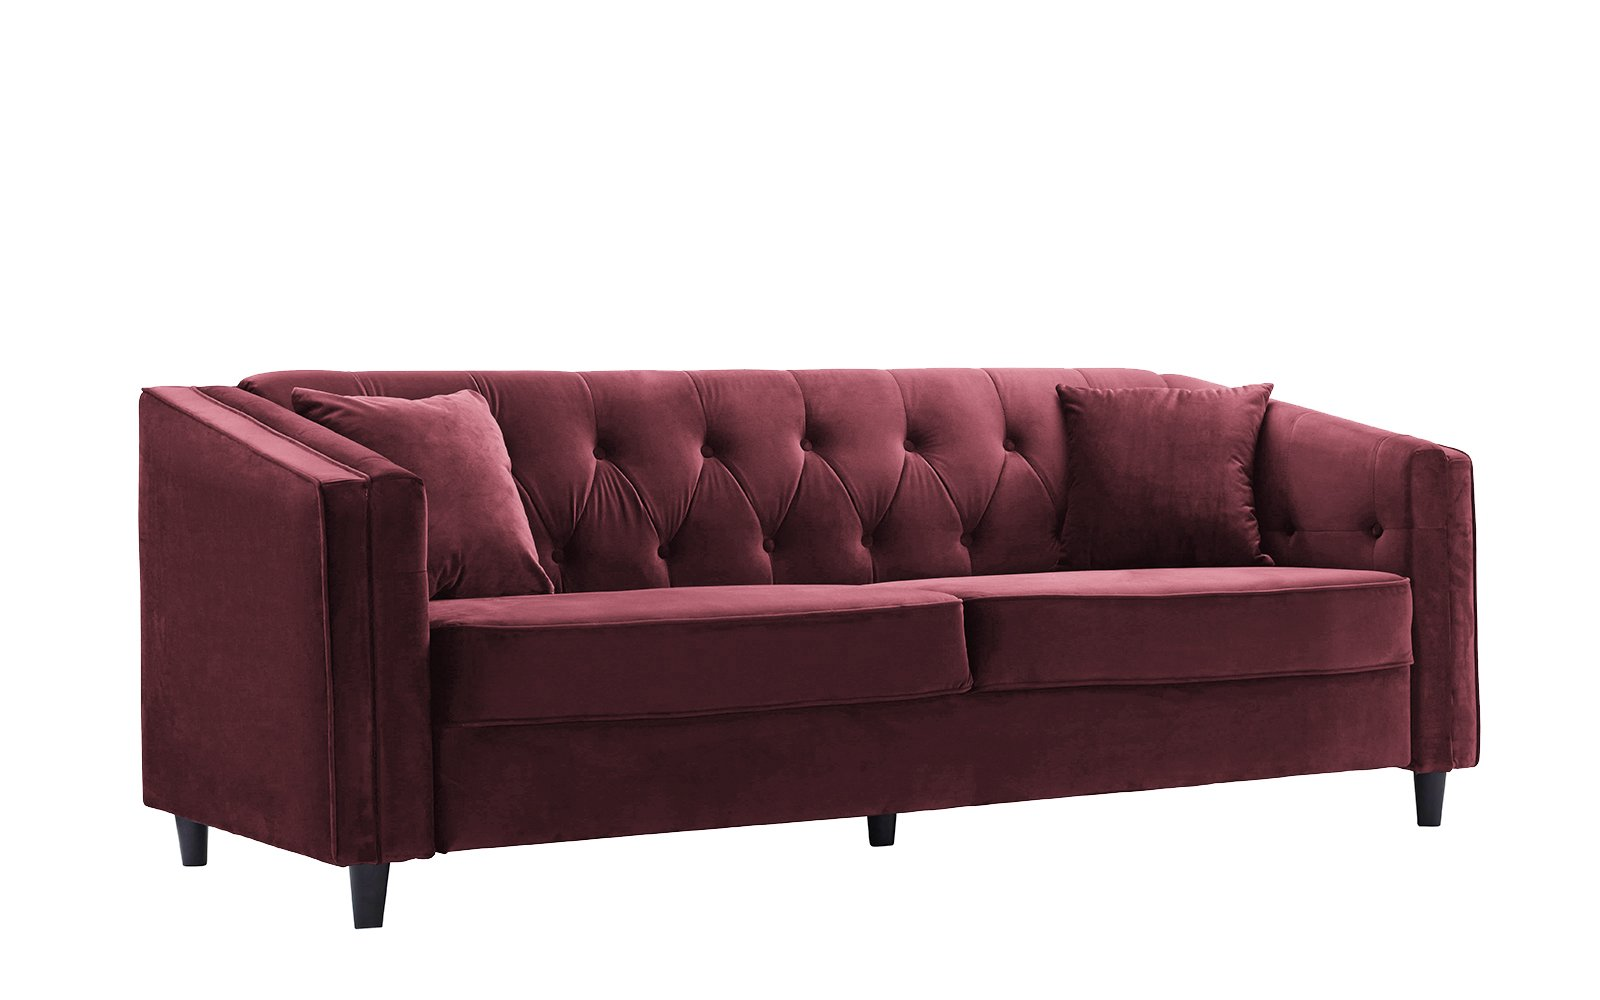 Classic Victorian Style Tufted Velvet Sofa, Living Room Couch with Tufted Buttons (Maroon) - Classic tufted sofa with a club style frame, button details and includes 2 decorative pillows in the same fabric. Upholstered in soft hand chosen velvet fabric on a hardwood frame with dark wooden Mid-century style legs. Seat and back cushions are filled with high density foam to provide plush yet firm comfort for long lasting use. - sofas-couches, living-room-furniture, living-room - 61HItPyaPrL -